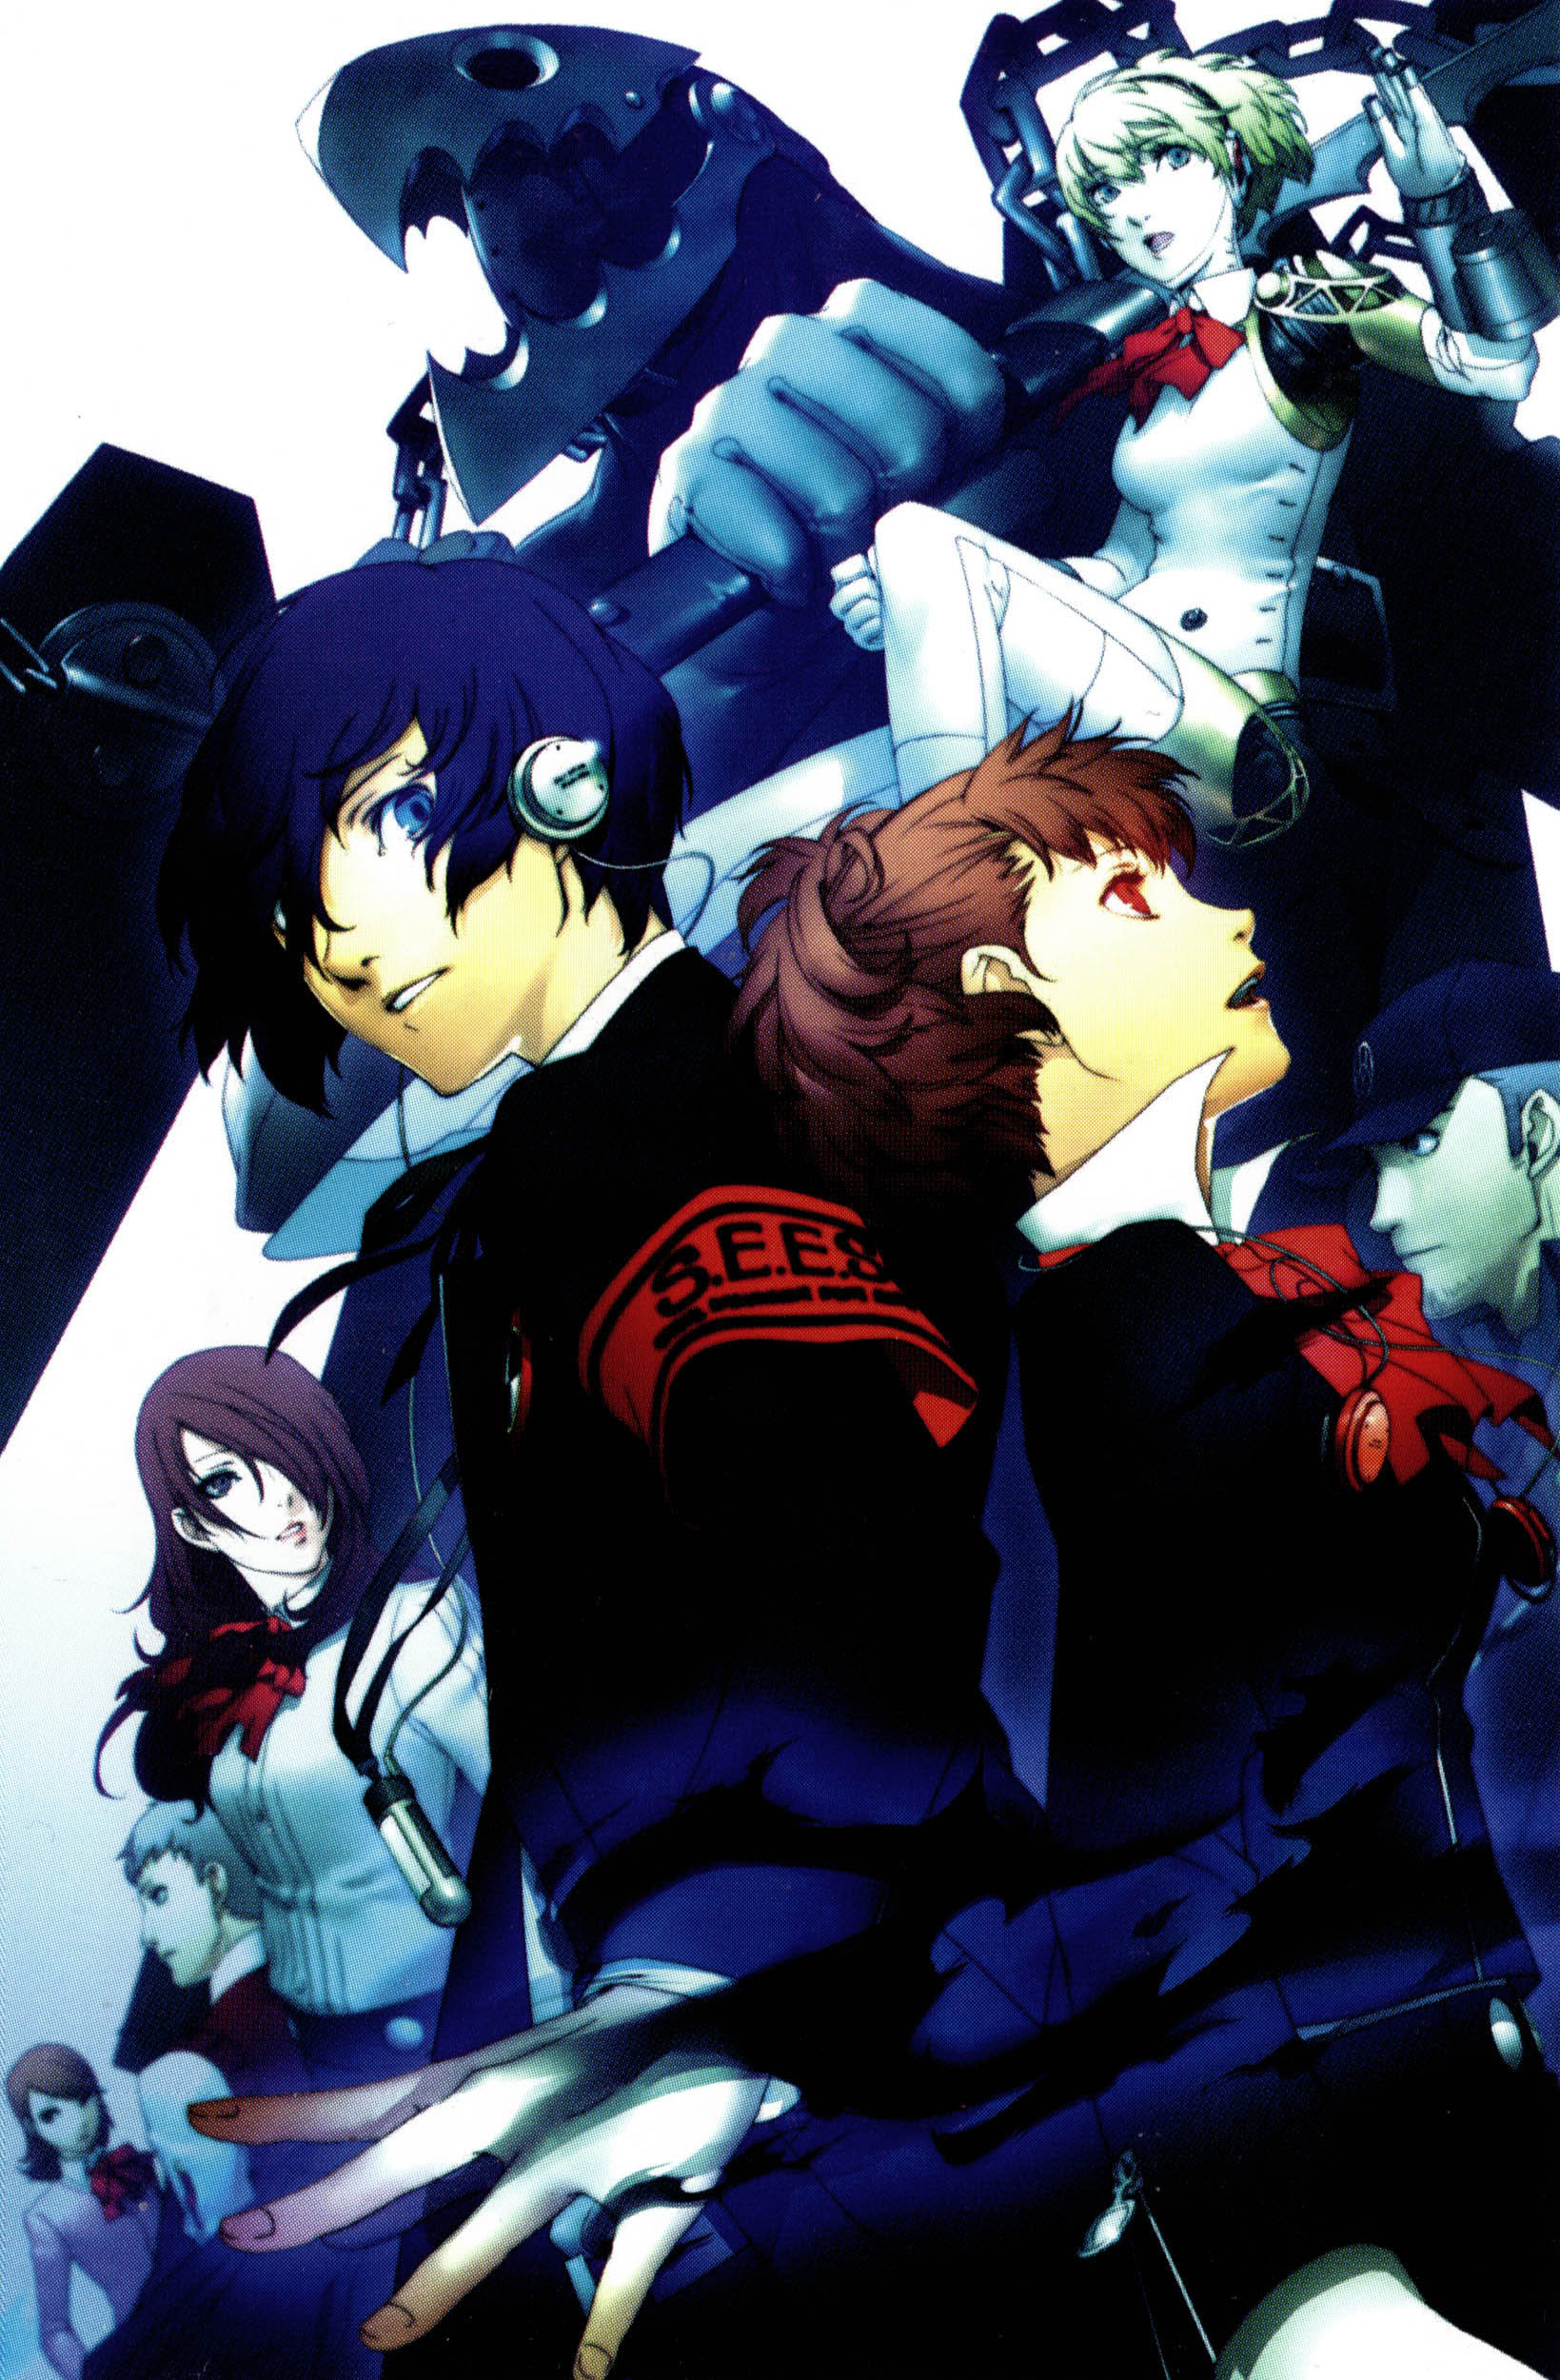 P3p wallpaper 66 images 1920x1080 wallpapers for persona 3 fes wallpaper hd voltagebd Images